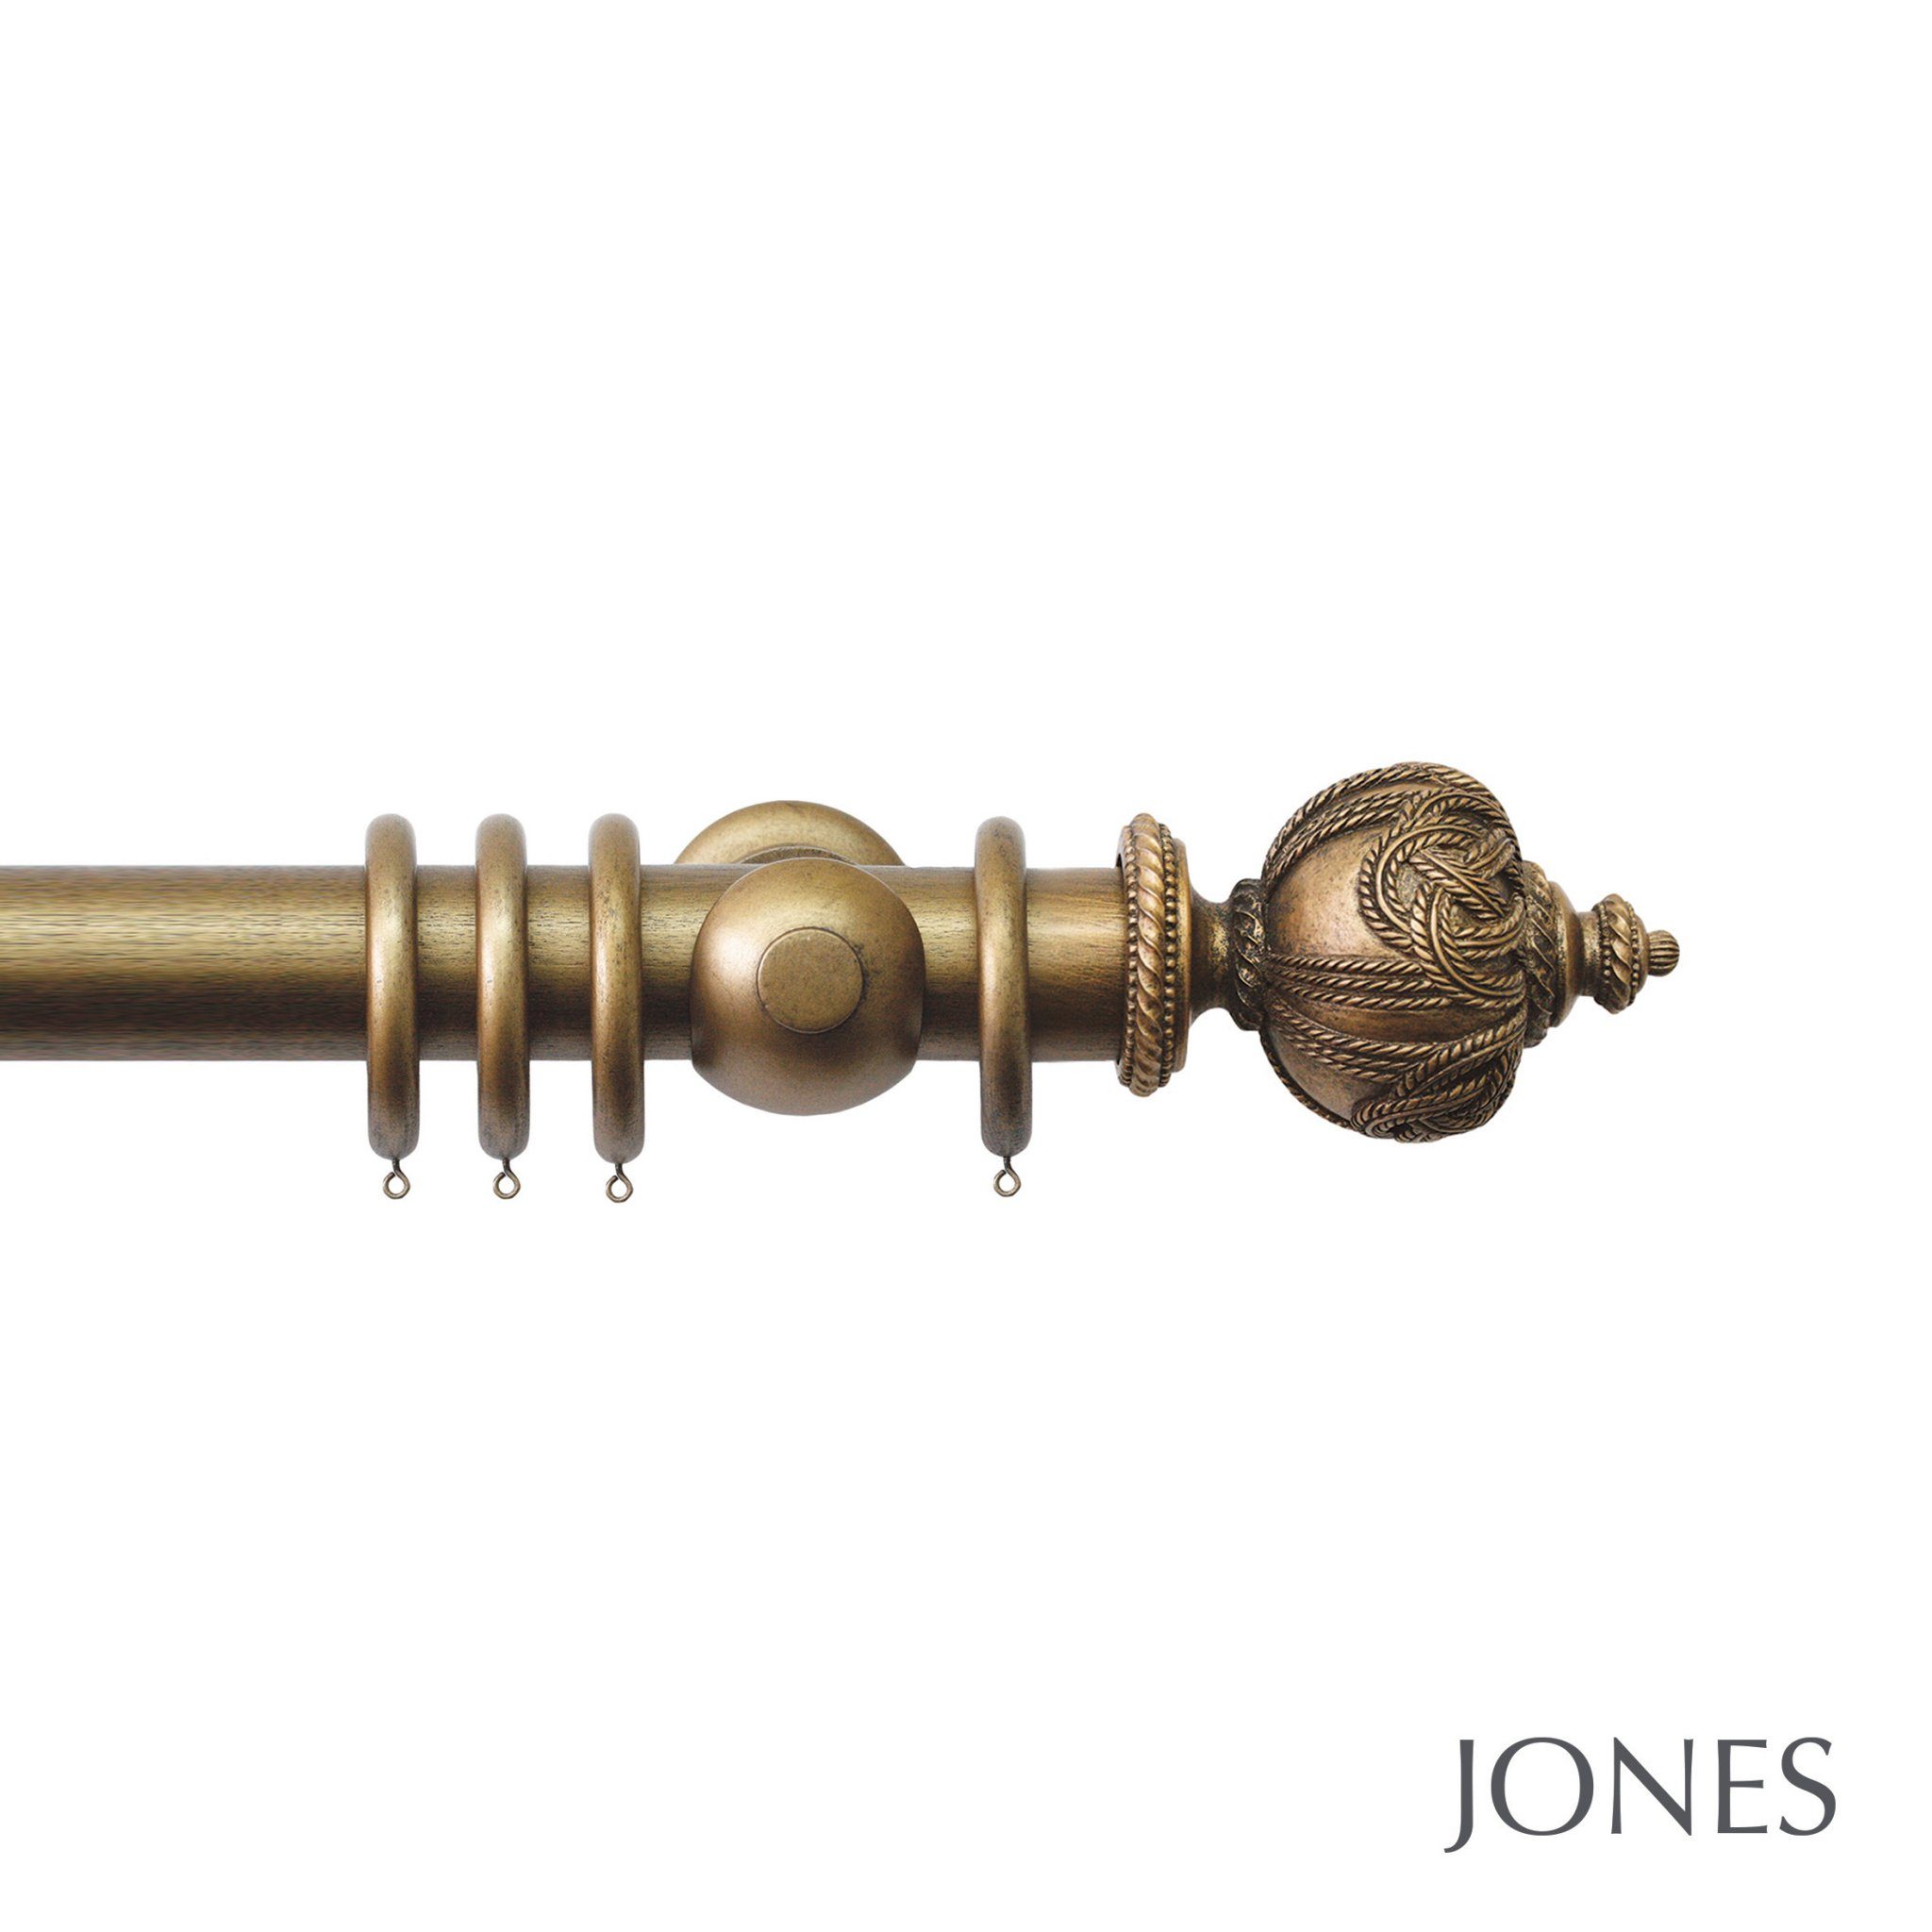 Jones Grande Handcrafted 63mm Wooden Curtain Pole Rope